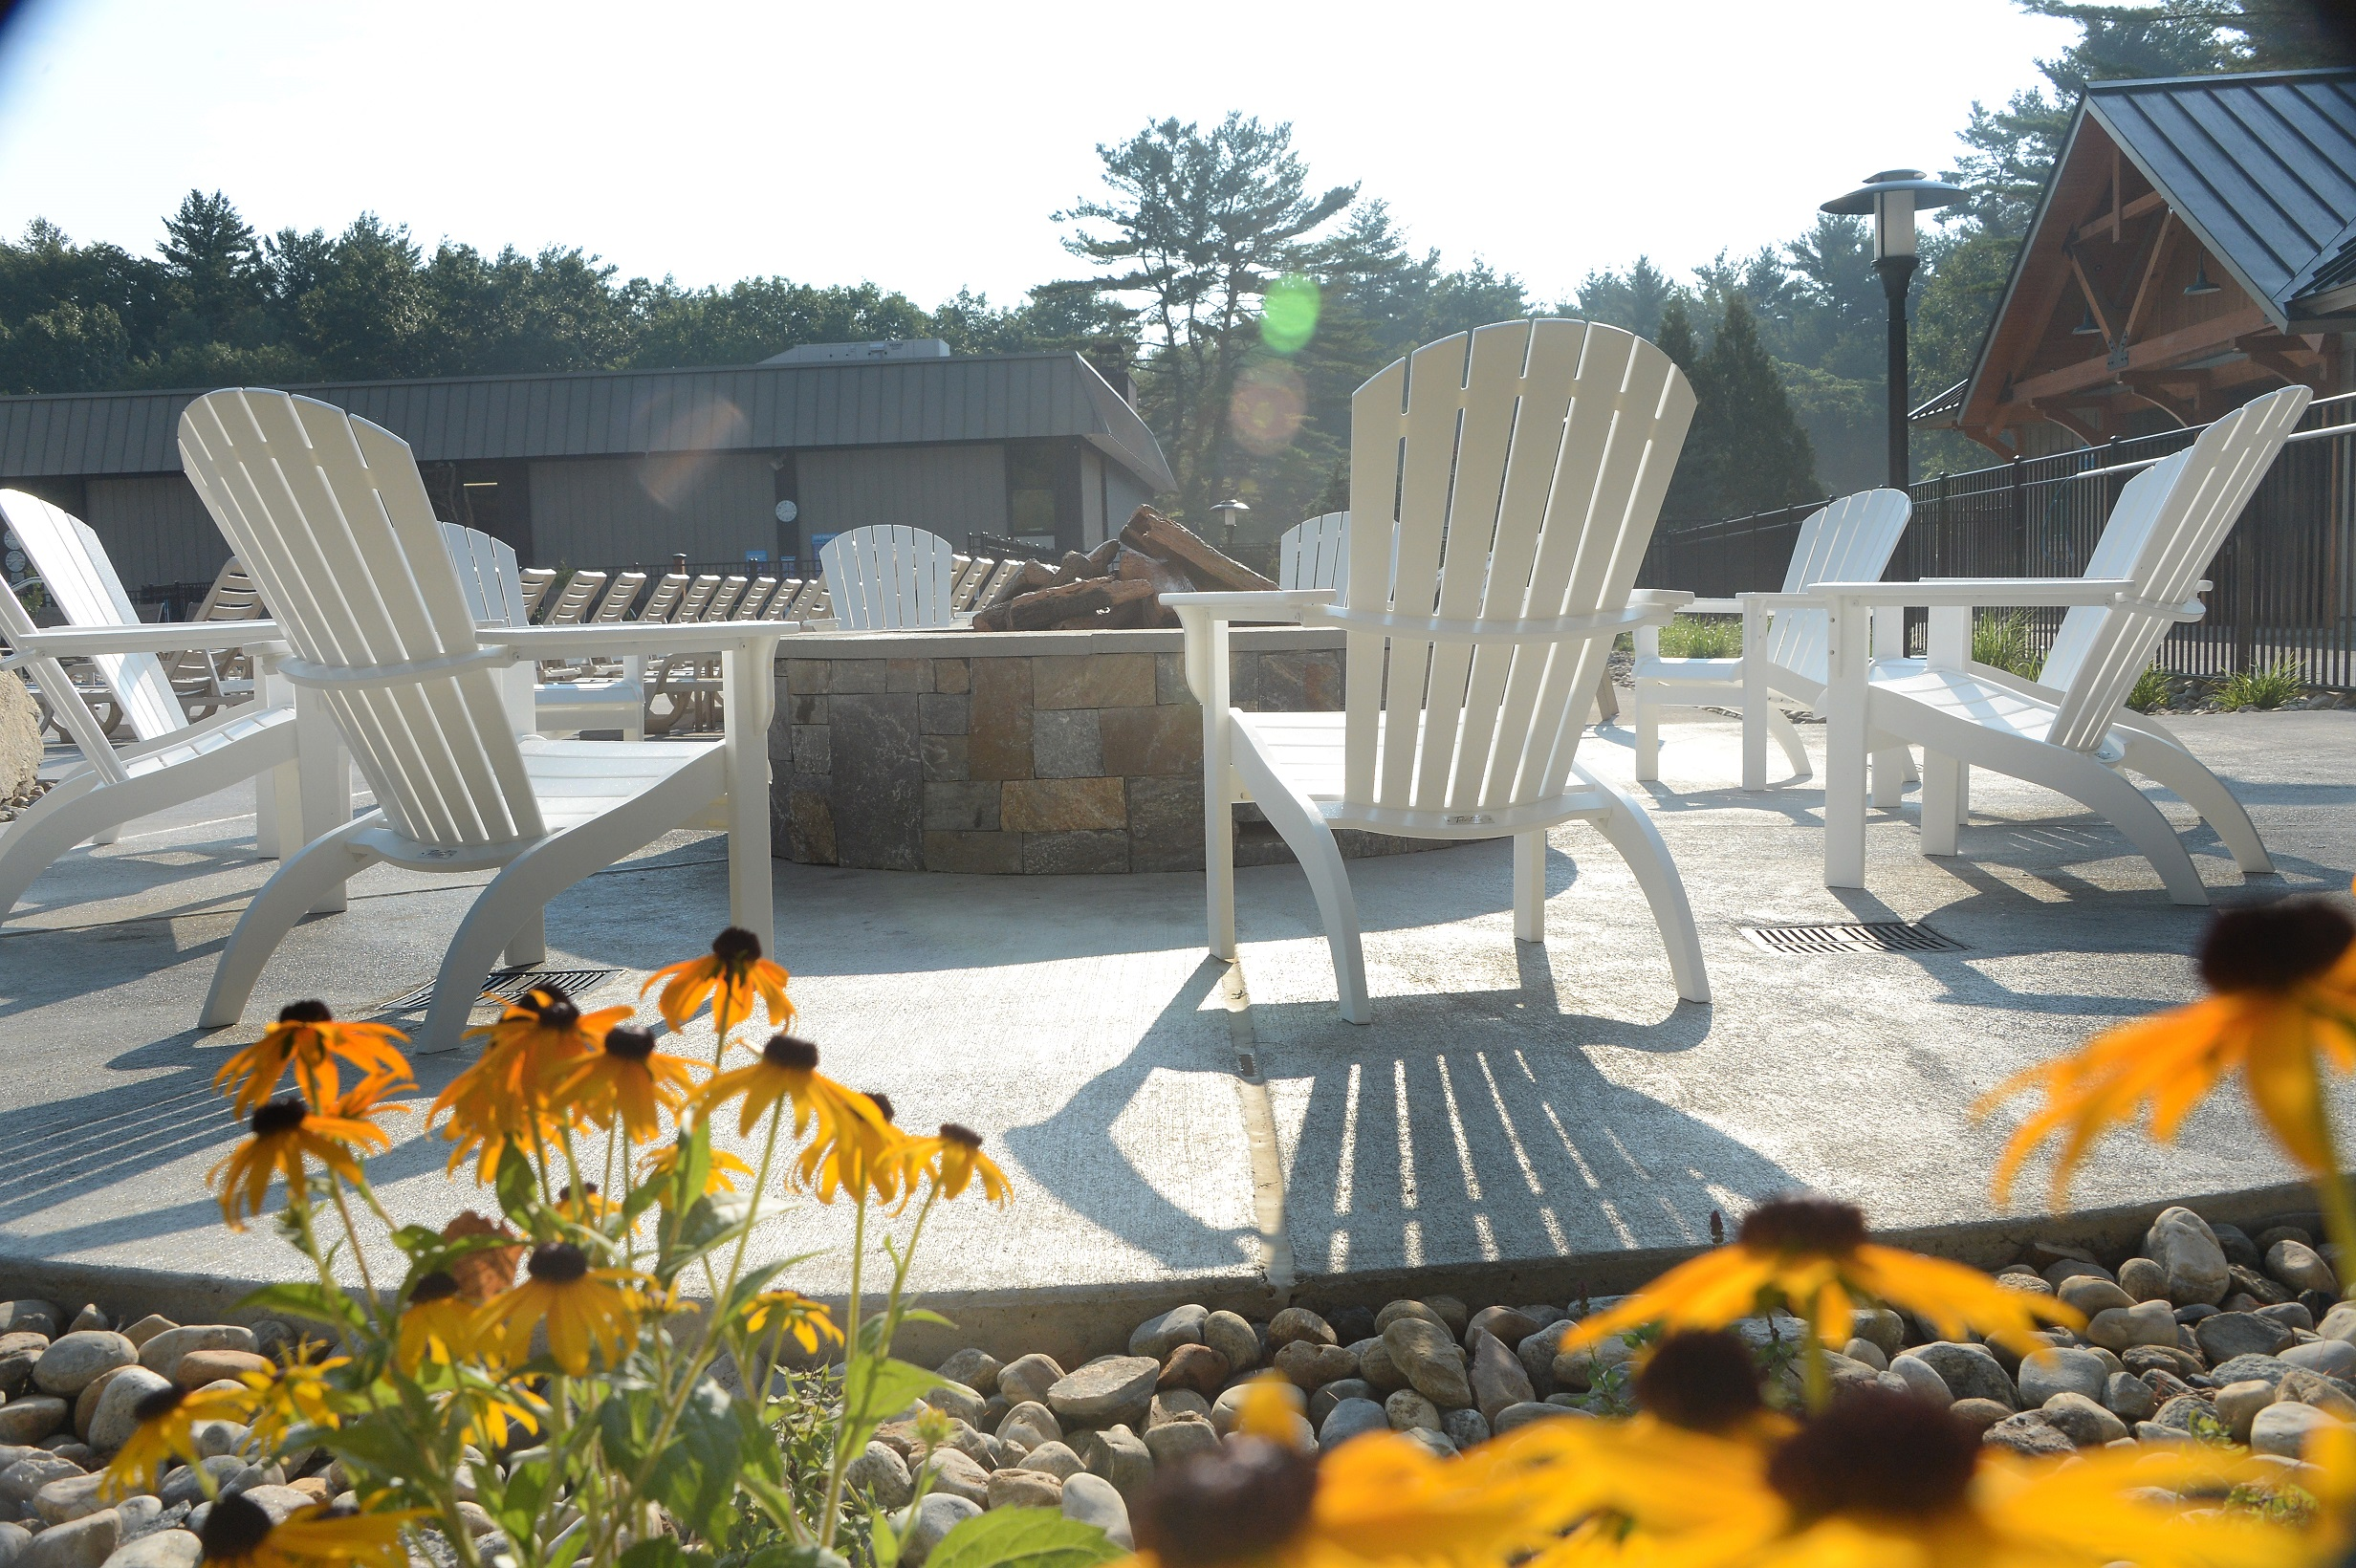 In this photo there is adirondack chairs surrounding a stone fire pit. Wood is stacked in the fire pit for the fire. Surrounding this area there are stones and flowers.